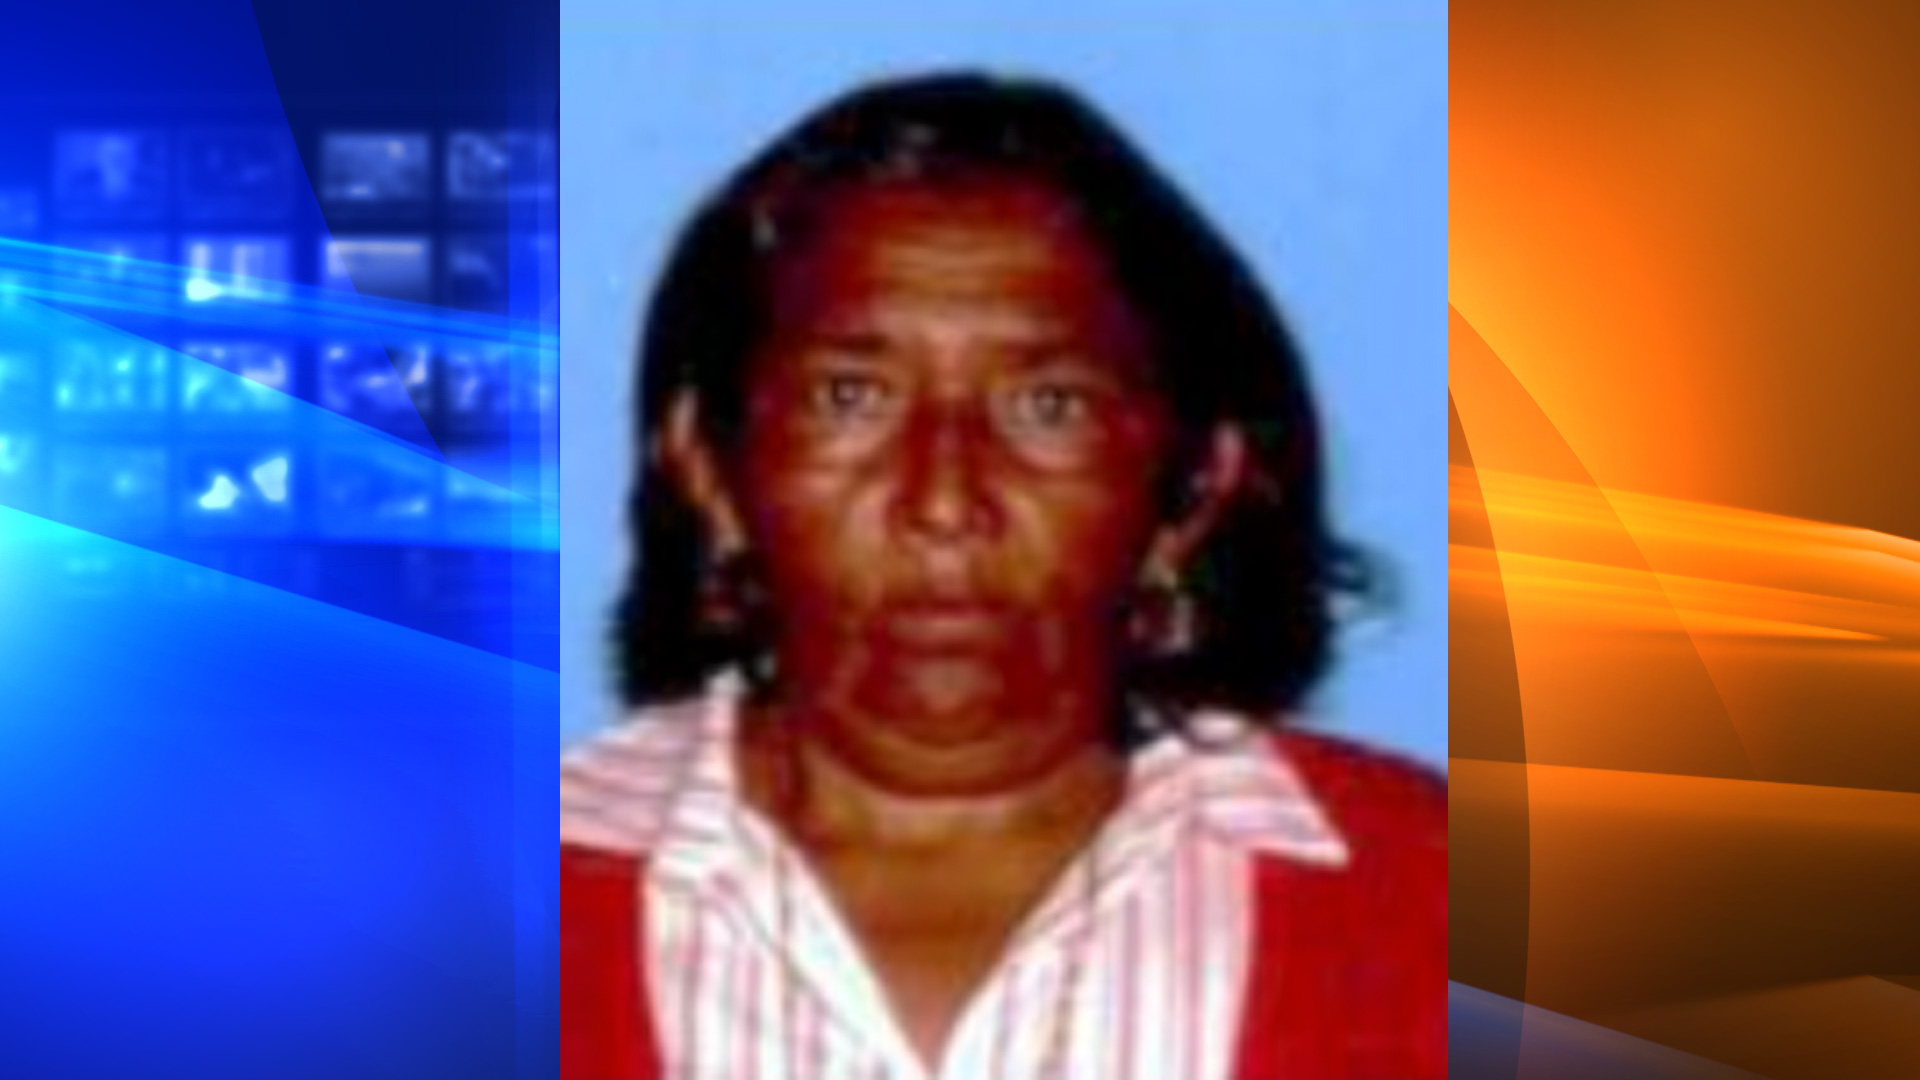 Maria Isabel Palma, whom police believe was the driver in a fatal hit-and-run, is seen in a photo released by LAPD on Oct. 22, 2021.